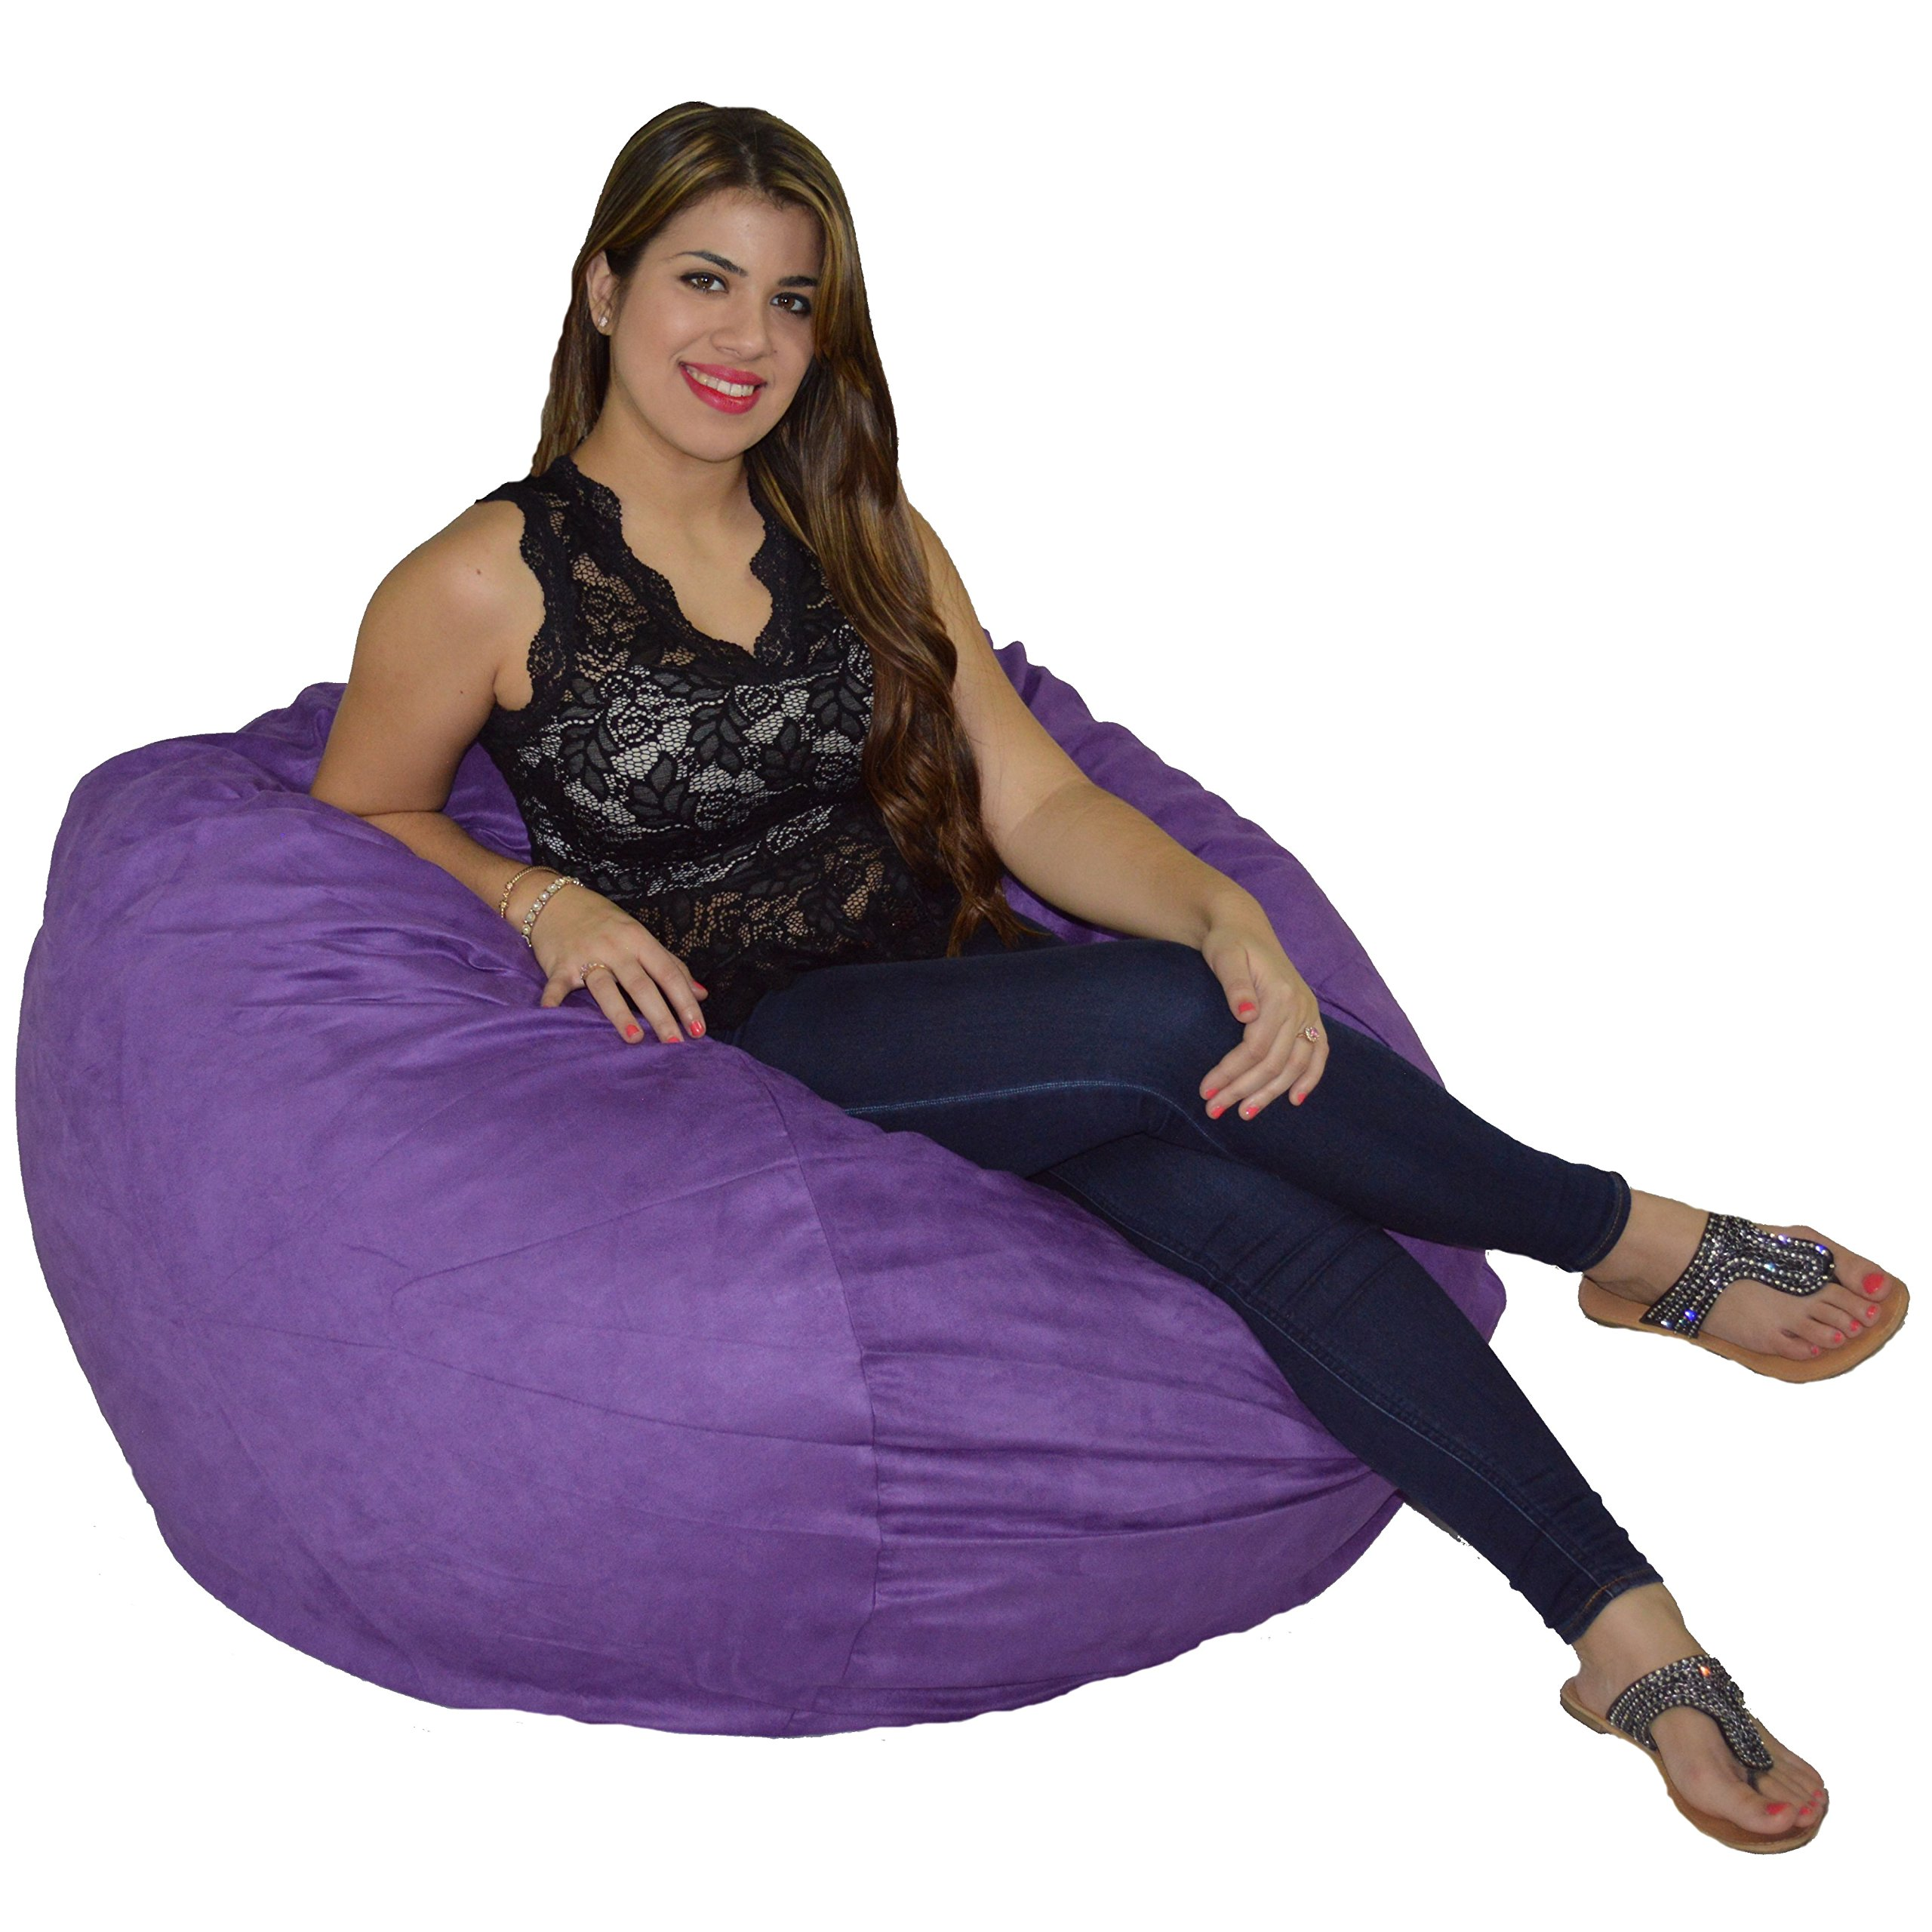 Cozy Sack Bean Bag Chair: Large 4 Foot Foam Filled Bean Bag - Large Bean Bag Chair, Protective Liner, Plush Micro Fiber Removable Cover - Purple by Cozy